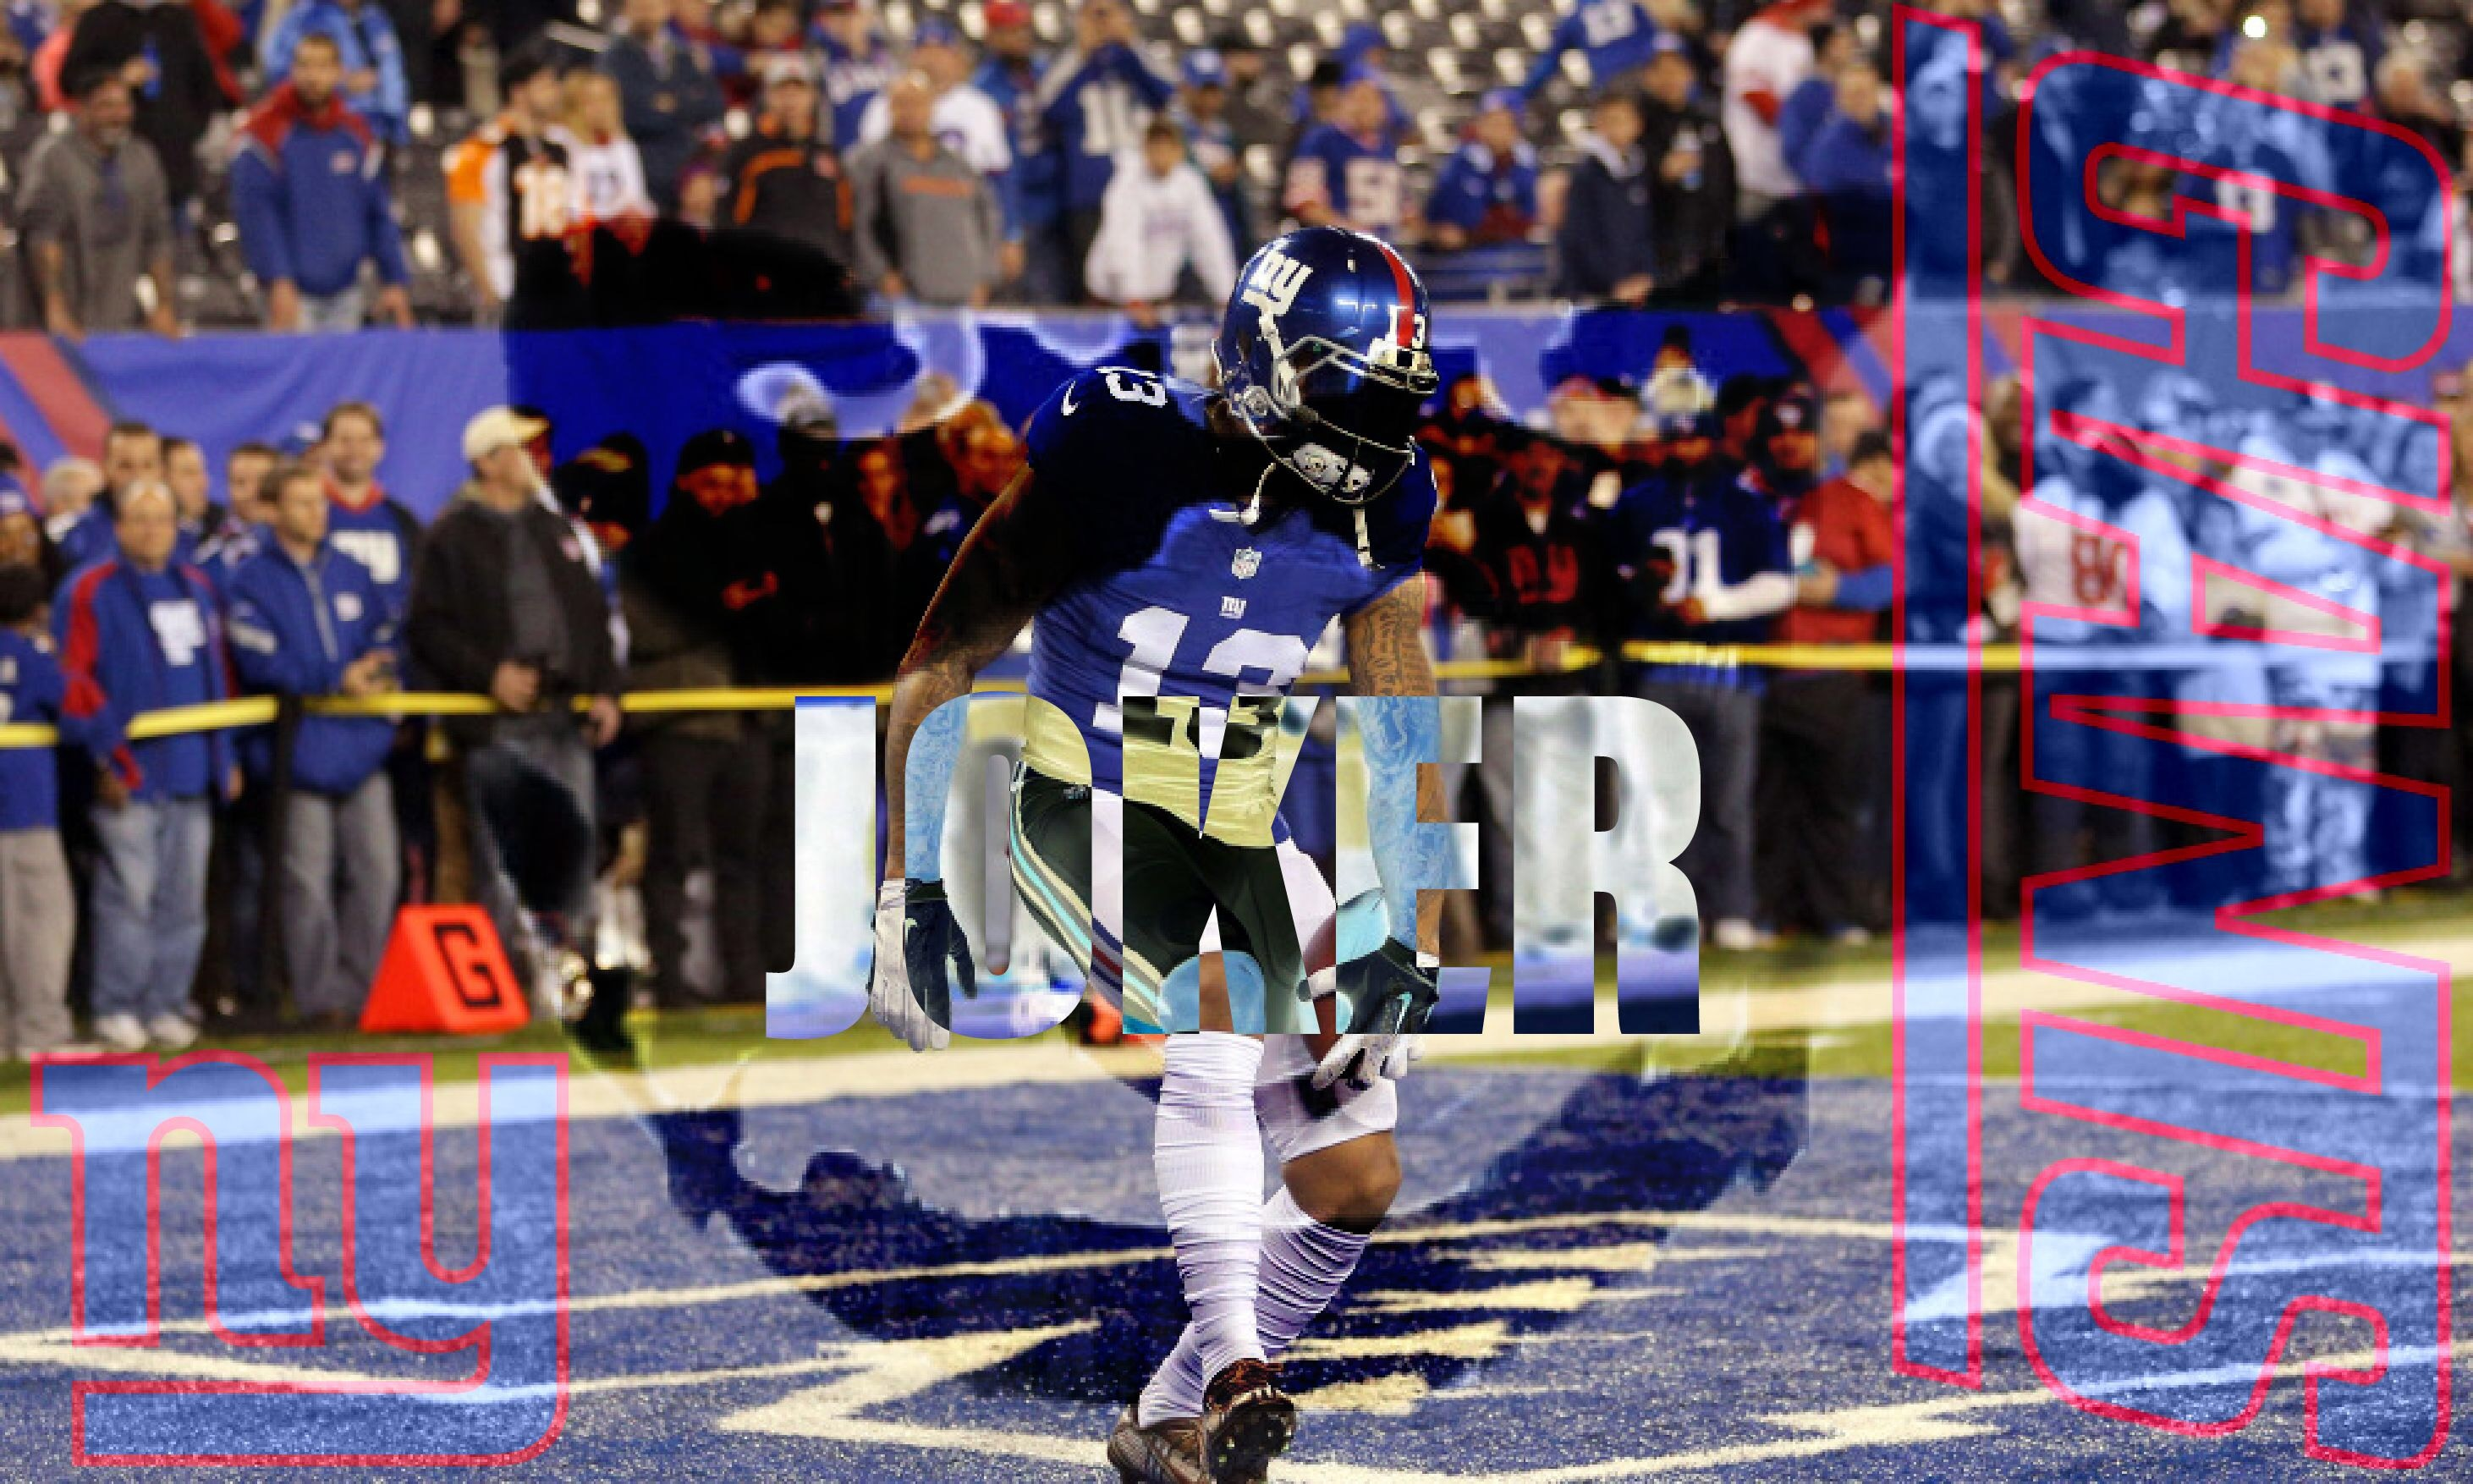 Odell beckham jr football wallpapers 62 images 1920x1200 best nfl football wallpapers high definition wallpapers 1080p free download wallpapers 4k voltagebd Gallery